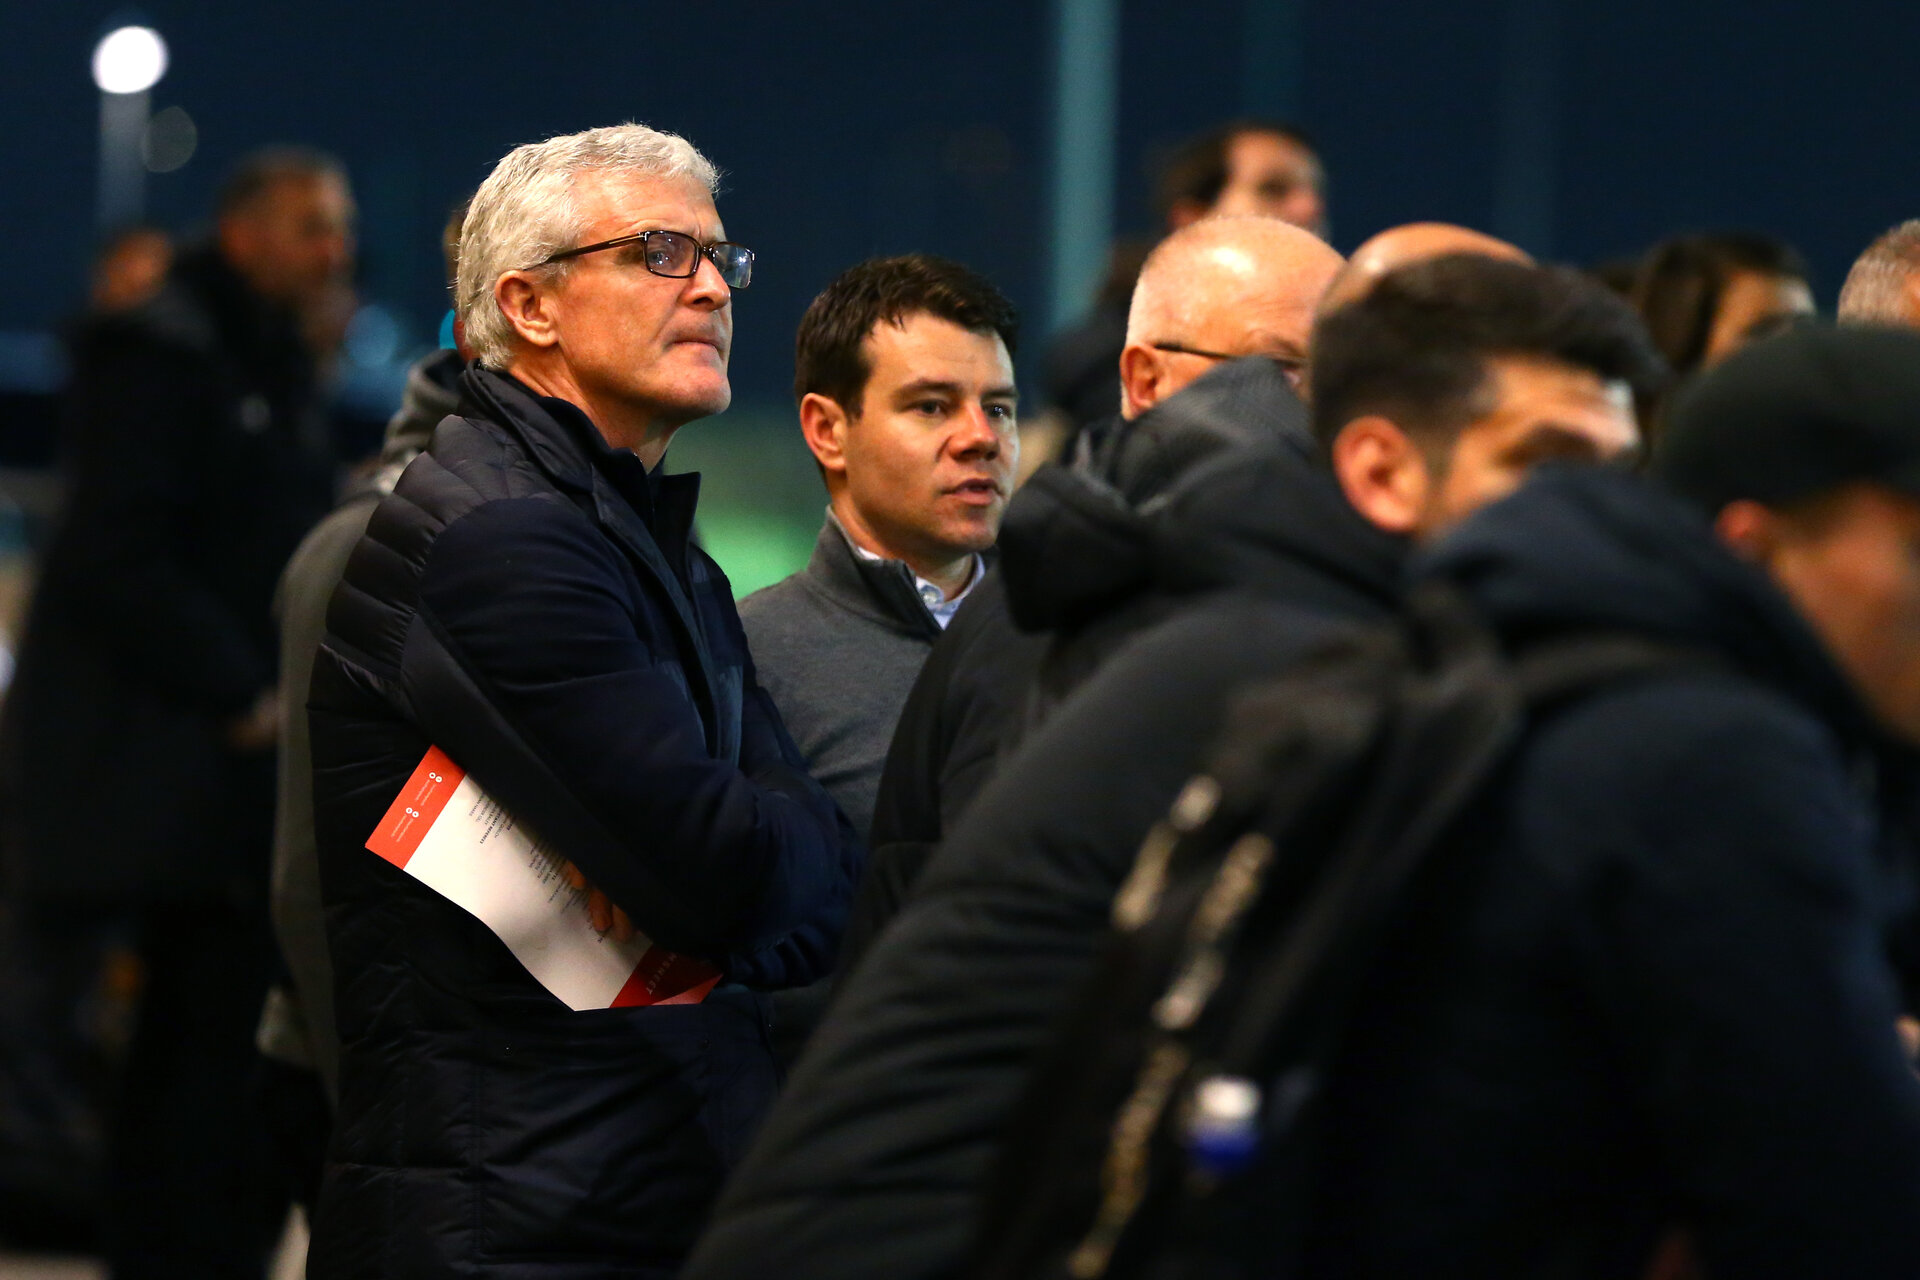 SOUTHAMPTON, ENGLAND - MARCH 16: Mark Hughes First Team Manager (left) comes to watch the U23s between Southampton FC and Leicester City FC at Staplewood Complex on March 16, 2018 in Southampton, England. (Photo by James Bridle - Southampton FC/Southampton FC via Getty Images)